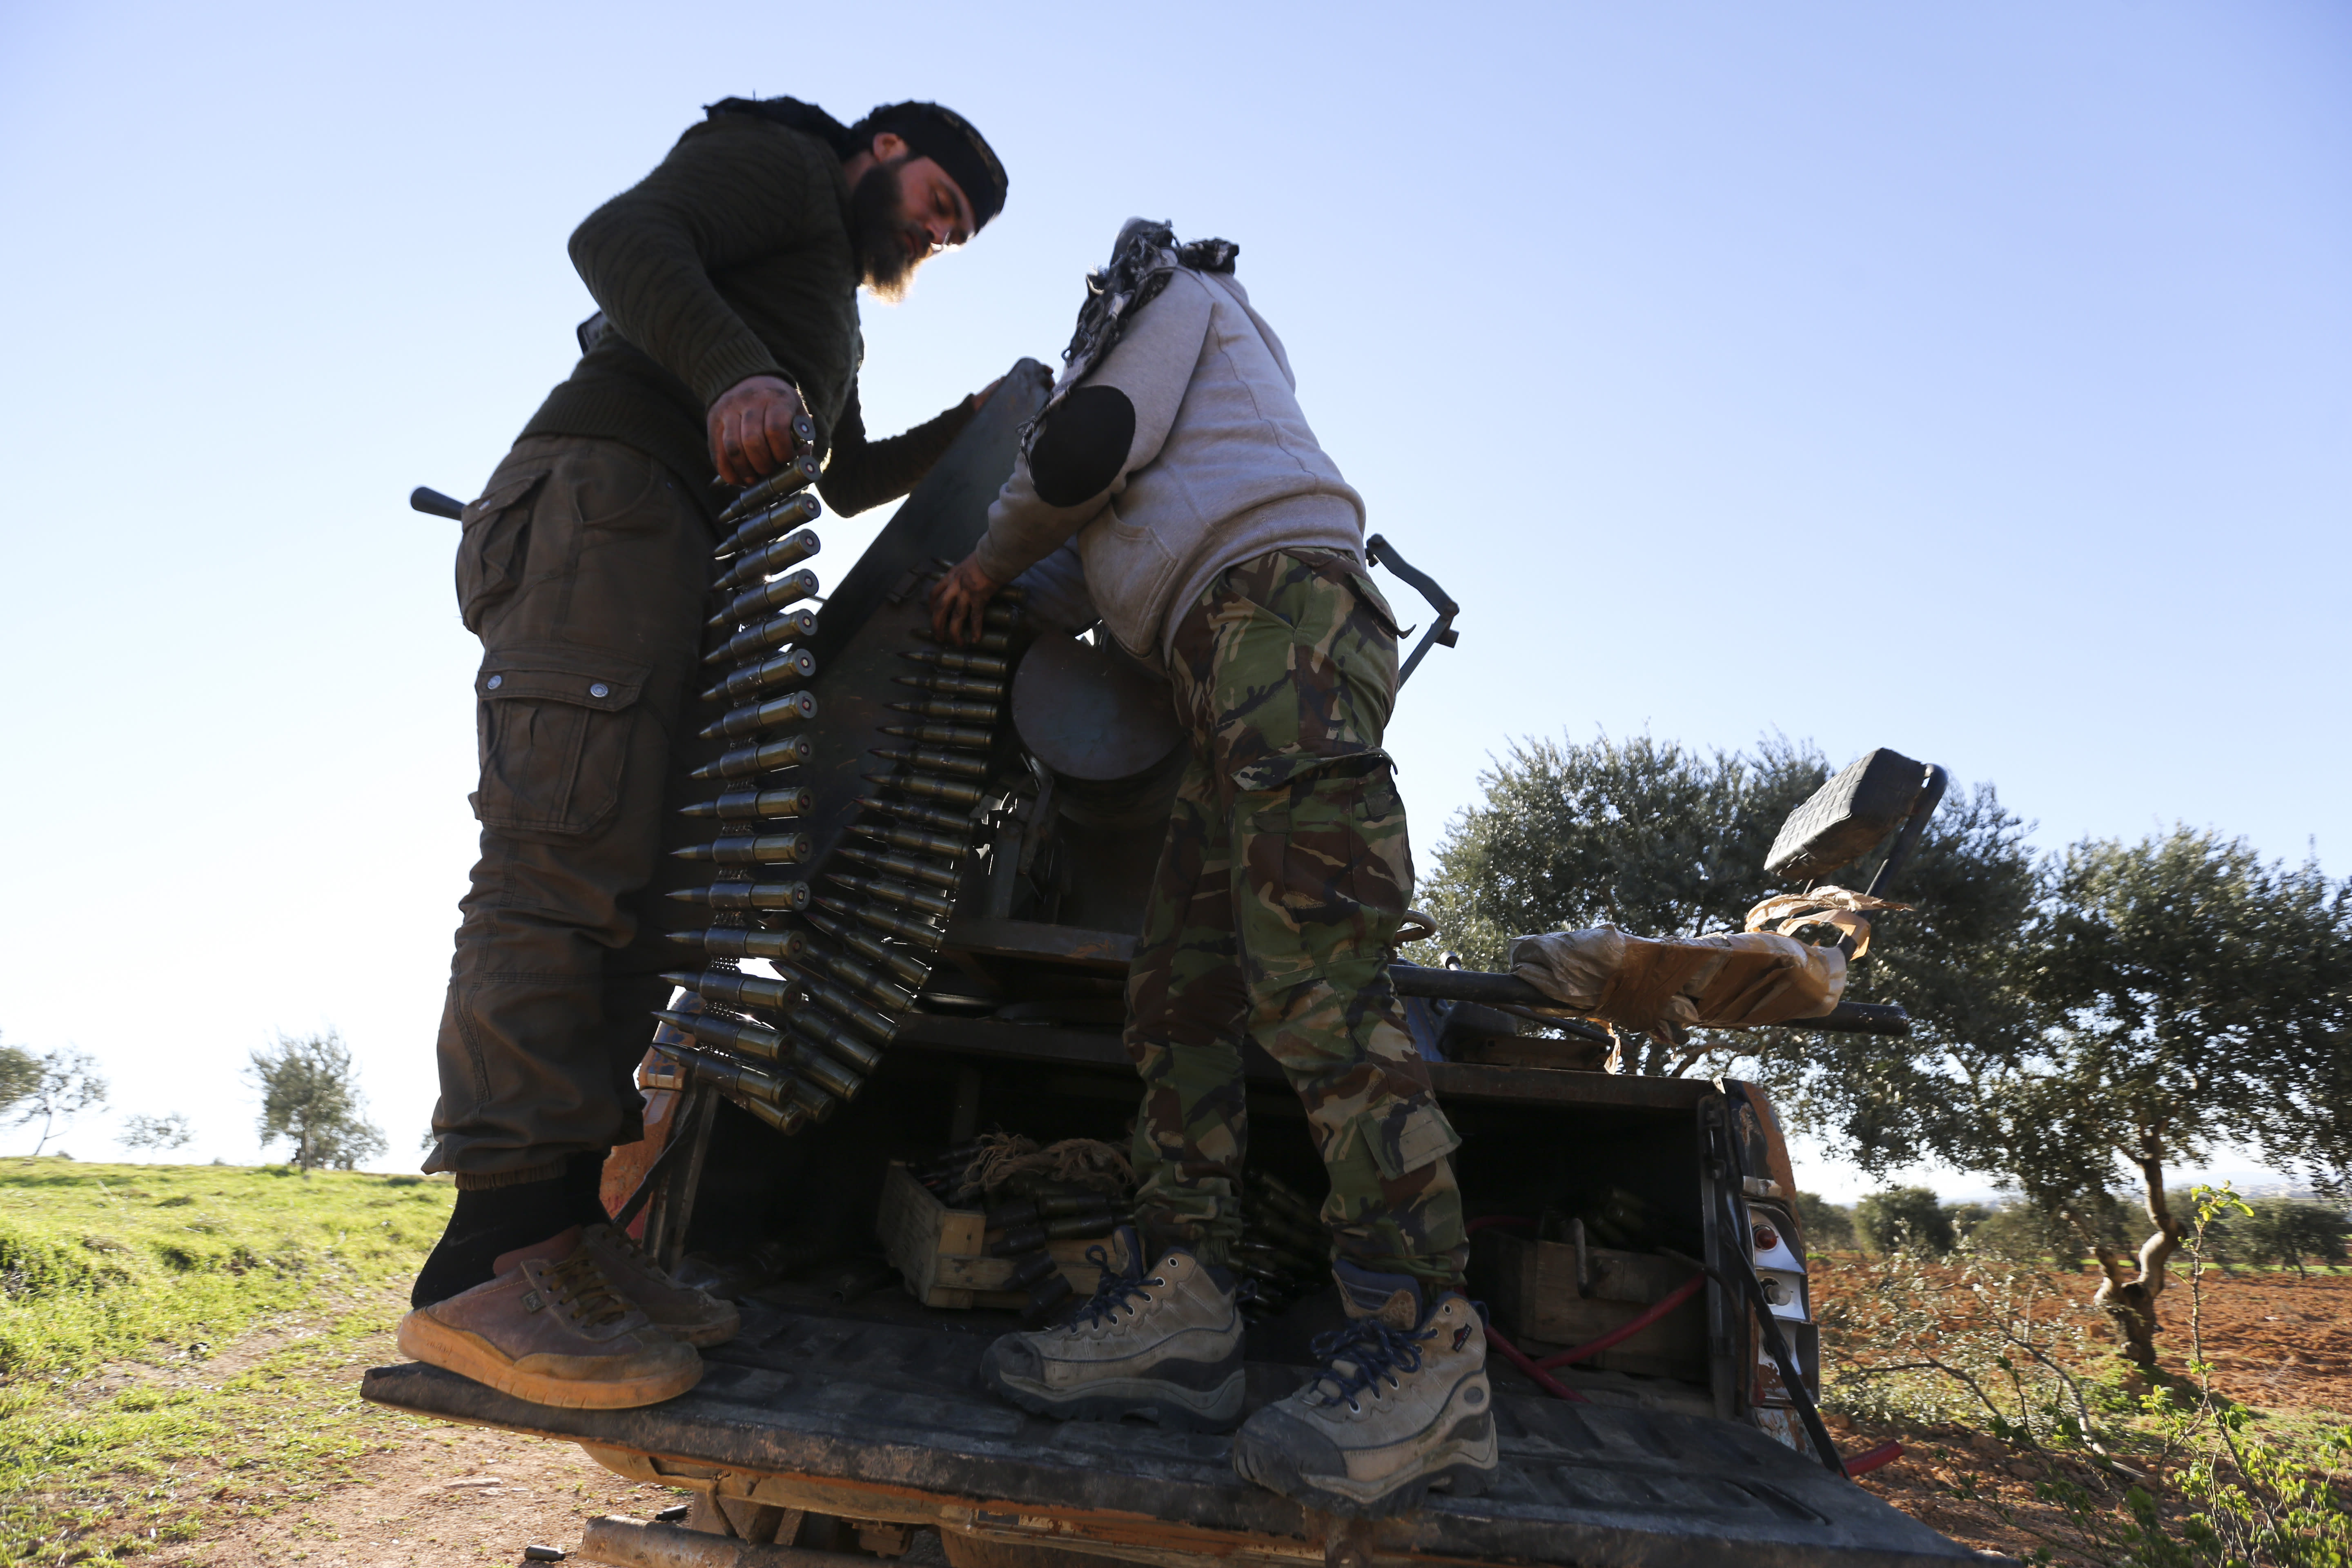 Turkish backed Syrian fighters load ammunition at a frontline near the town of Saraqib in Idlib province, Syria, Wednesday, Feb. 26, 2020. Syrian government forces have captured dozens of villages, including major rebel strongholds, over the past few days in the last opposition-held area in the country's northwest. (AP Photo/Ghaith Alsayed)